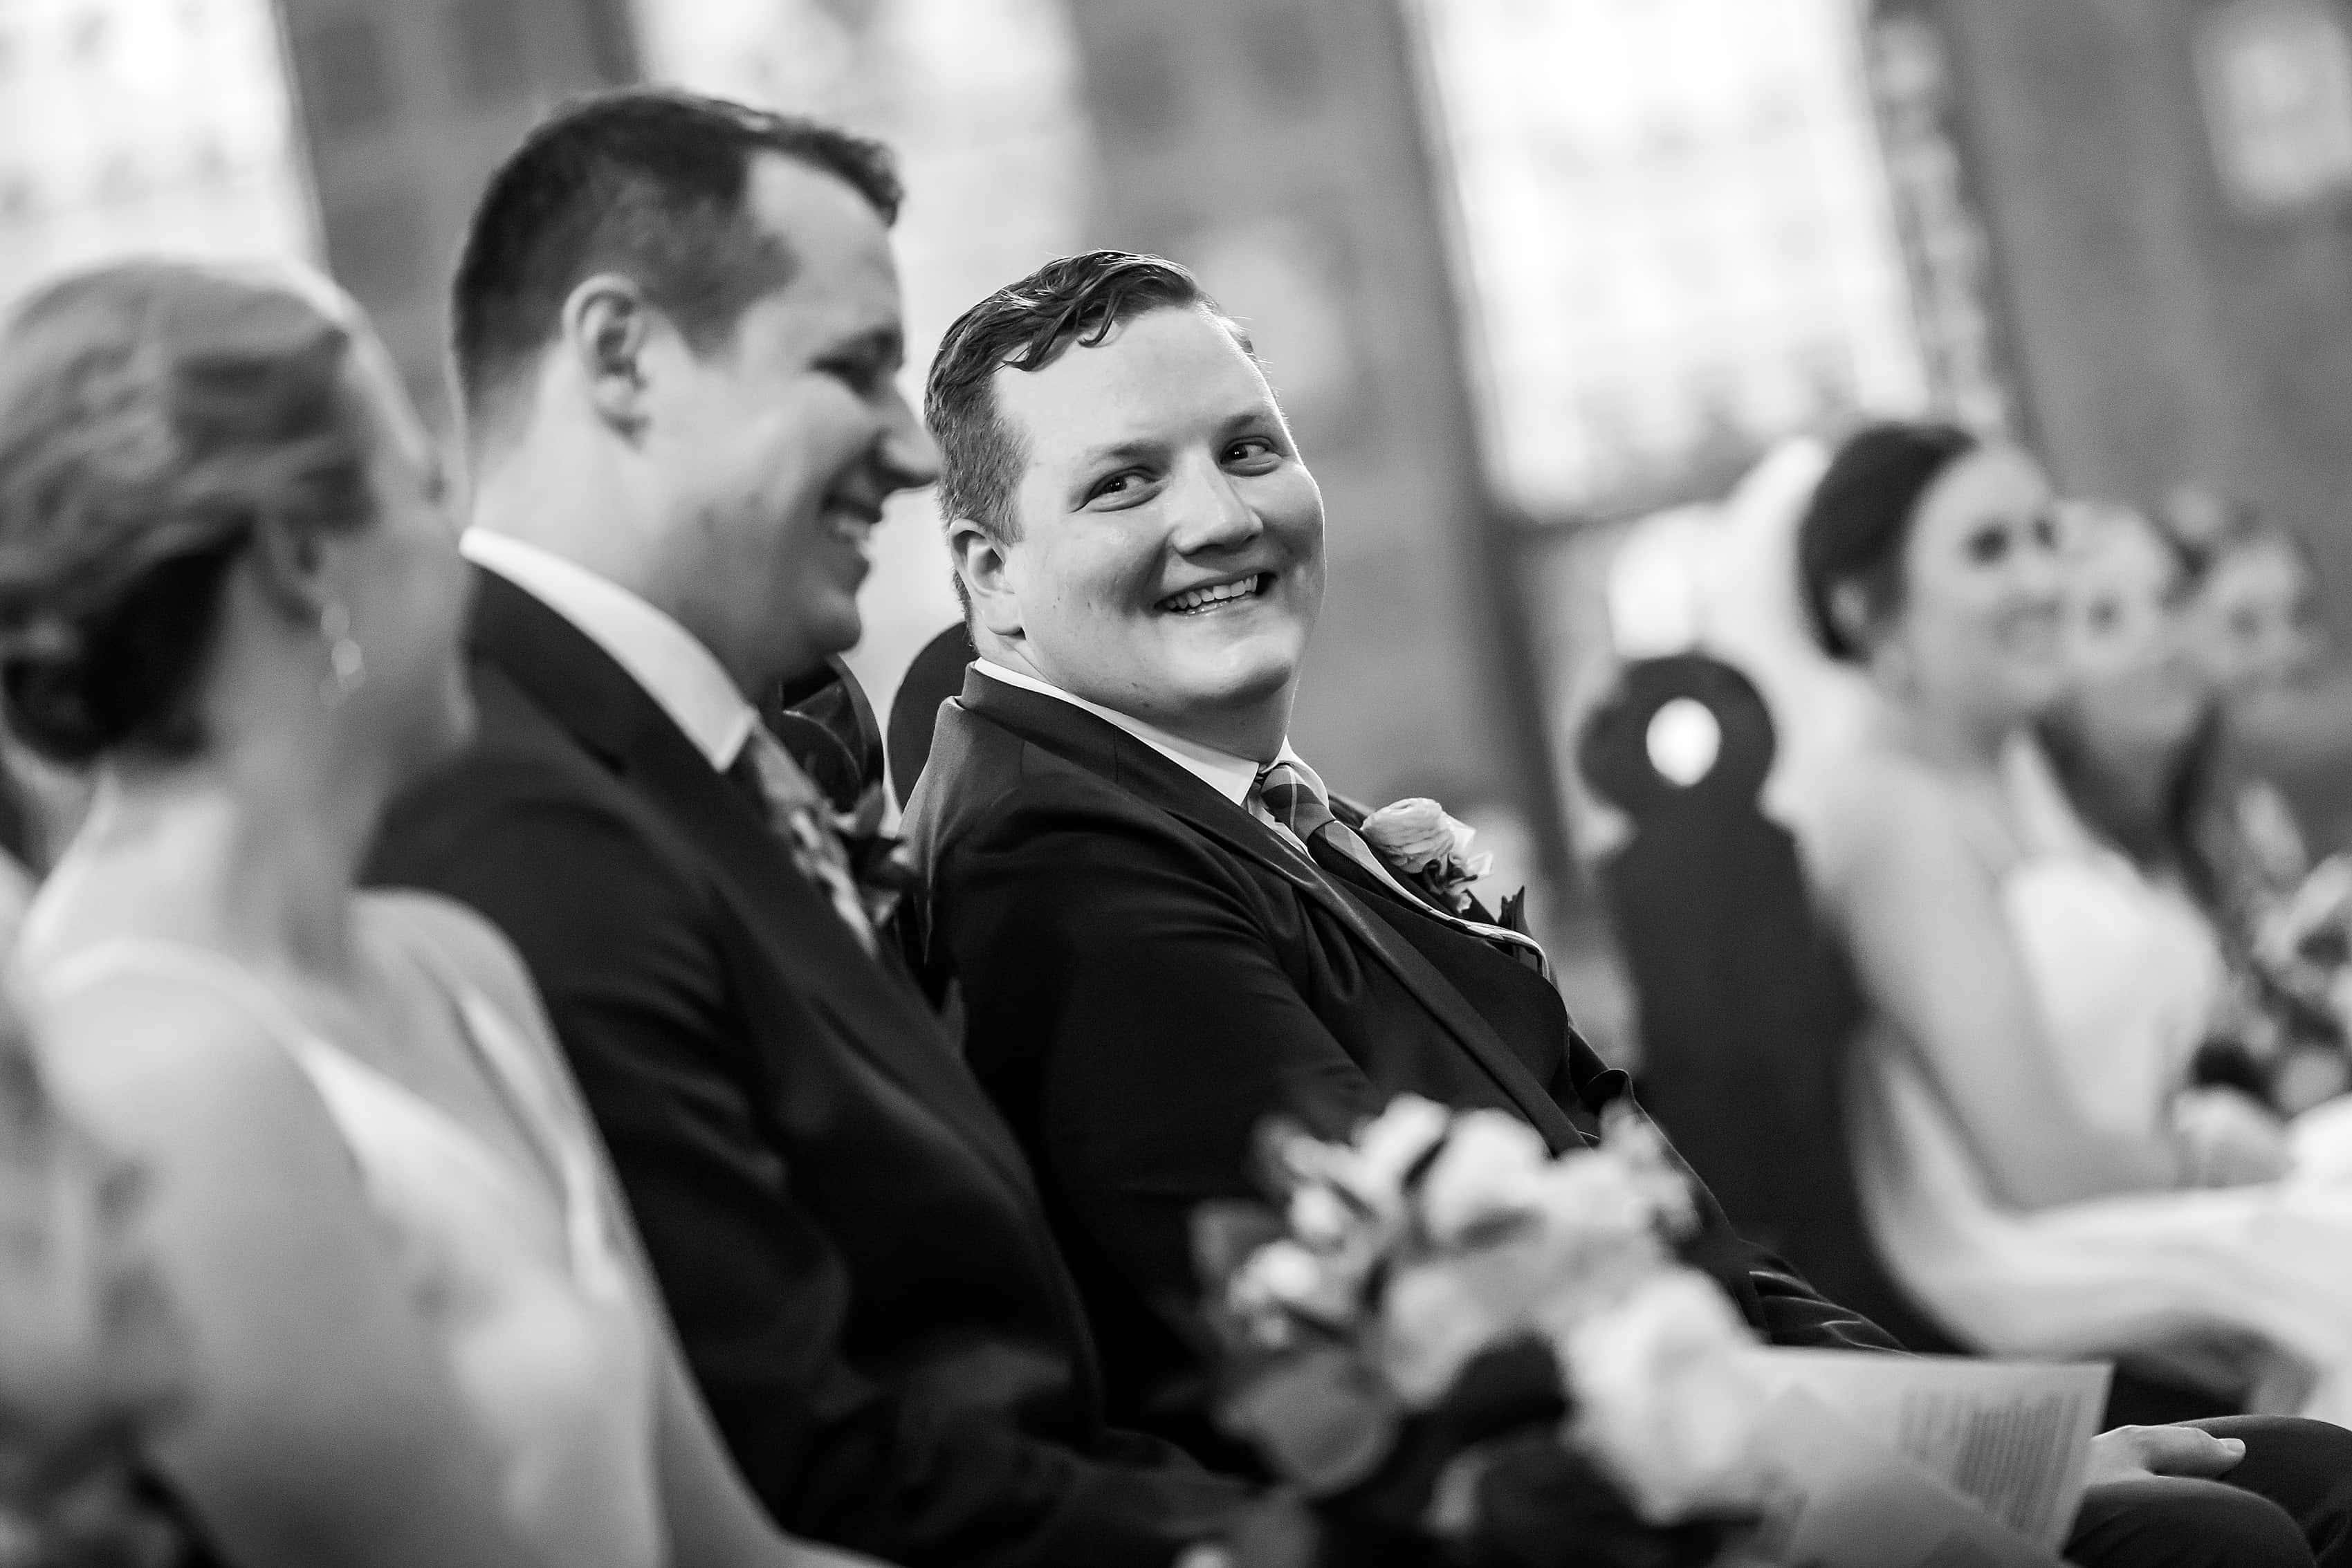 groom smiles at brother during wedding ceremony at Church of our Savior